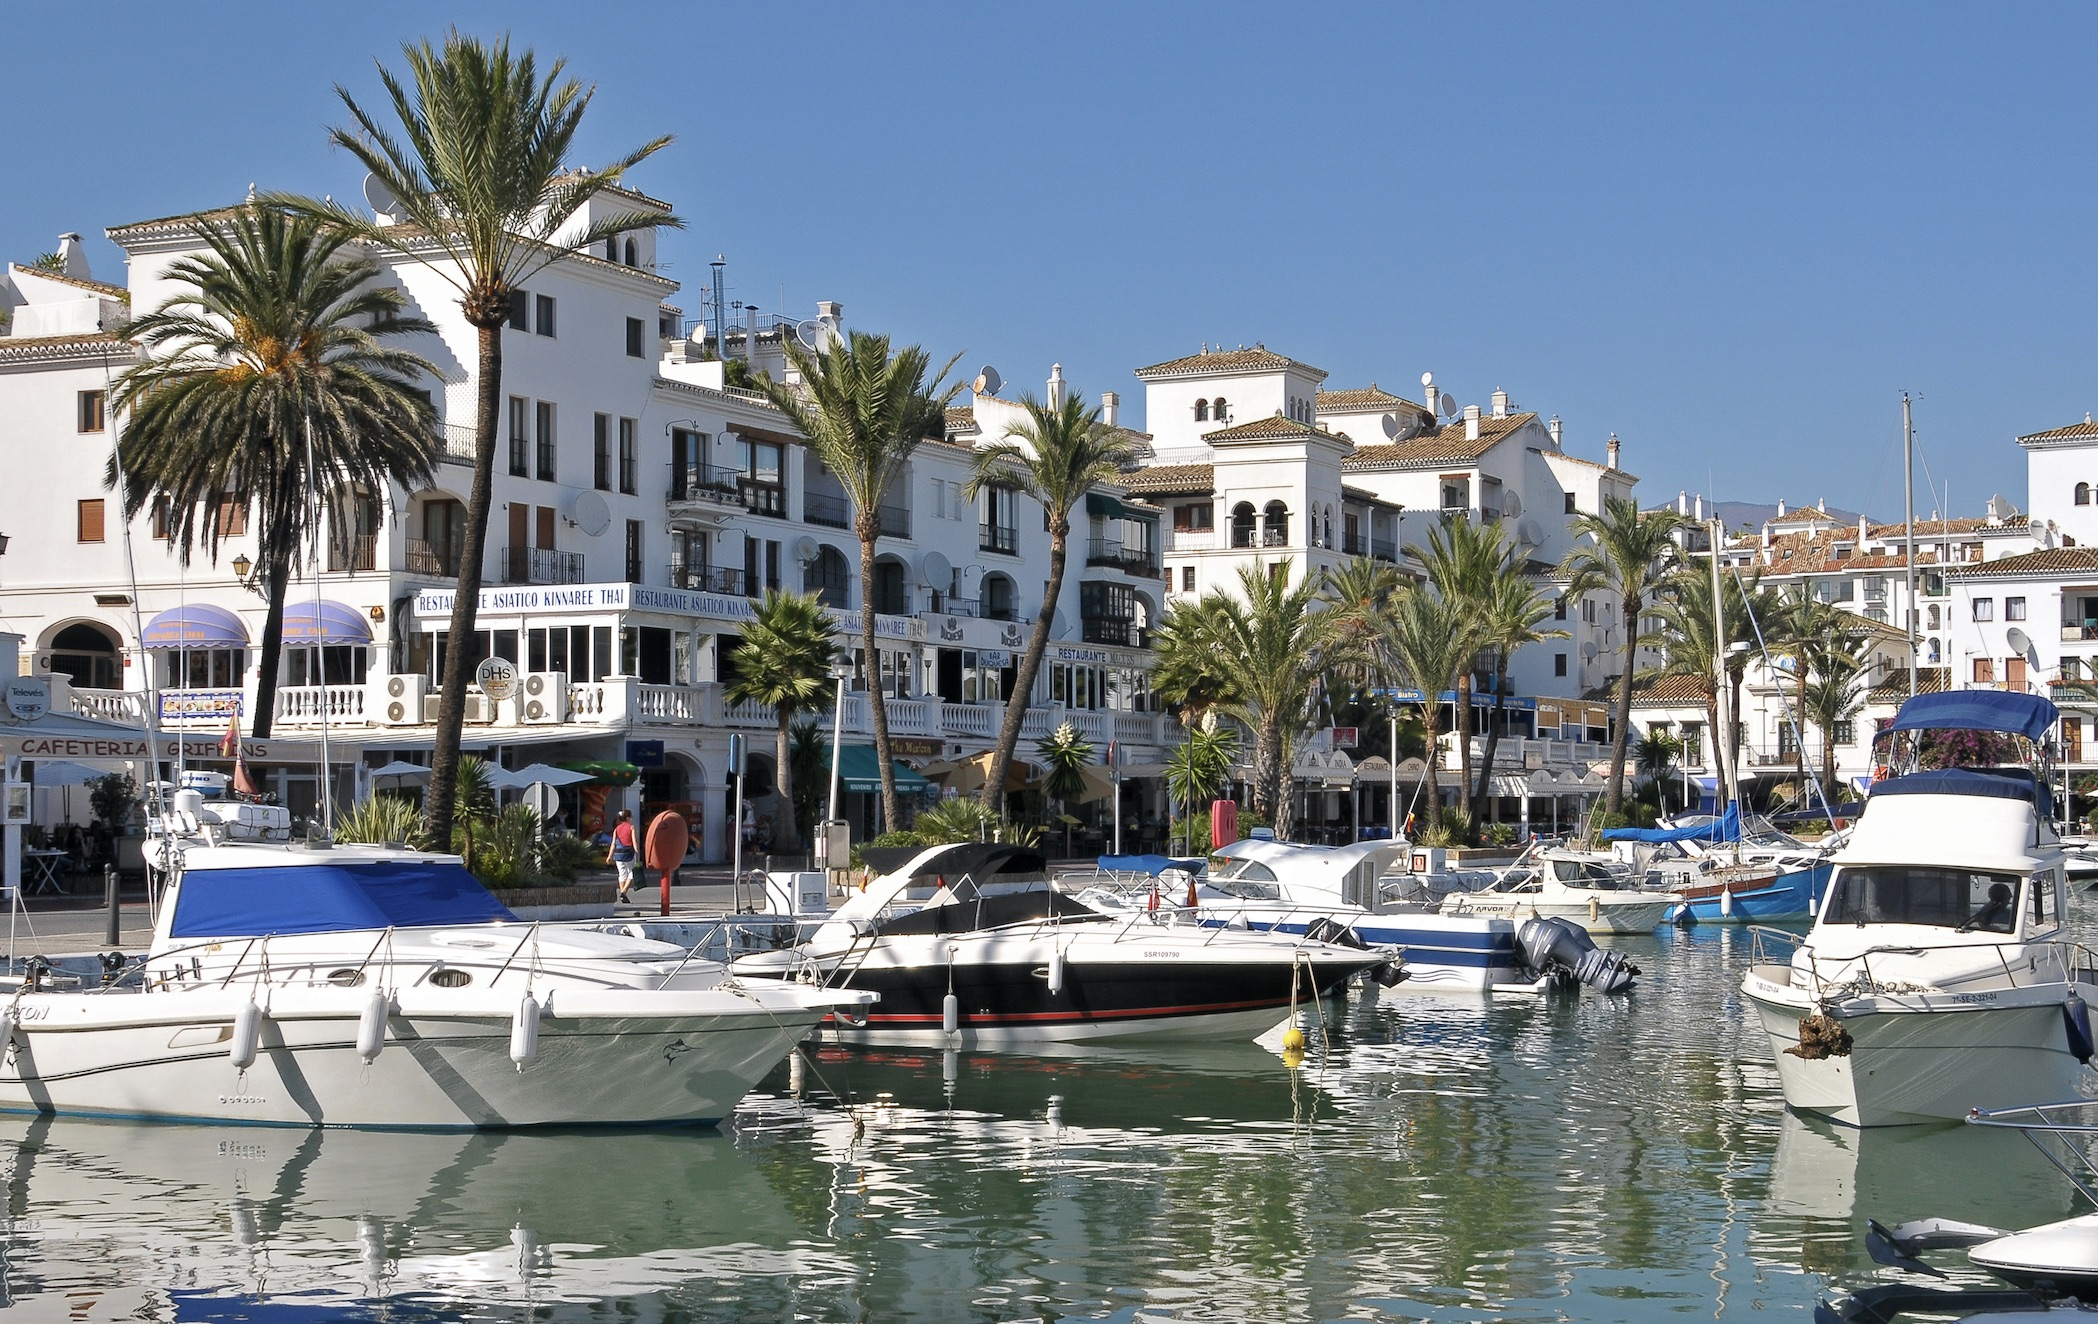 Before Describing The Marina Itself It Is Well Worth Detailing Some Of Great Aspects Puerto De La Duquesa Which Include Pristine Beaches And A